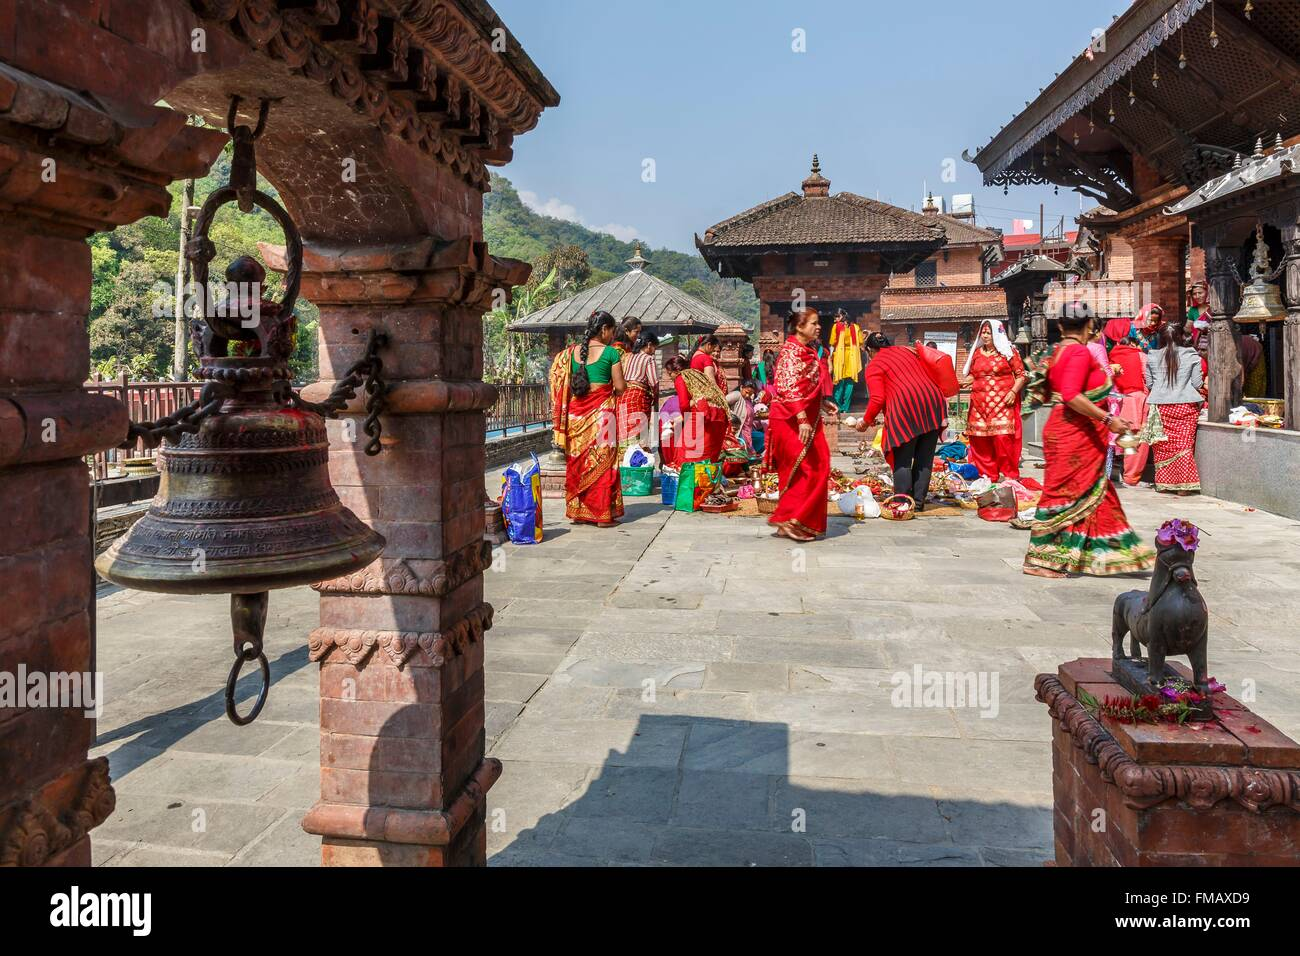 Nepal, Gandaki zone, Pokhara, ceremony at Kedareshor Mahadev temple - Stock Image